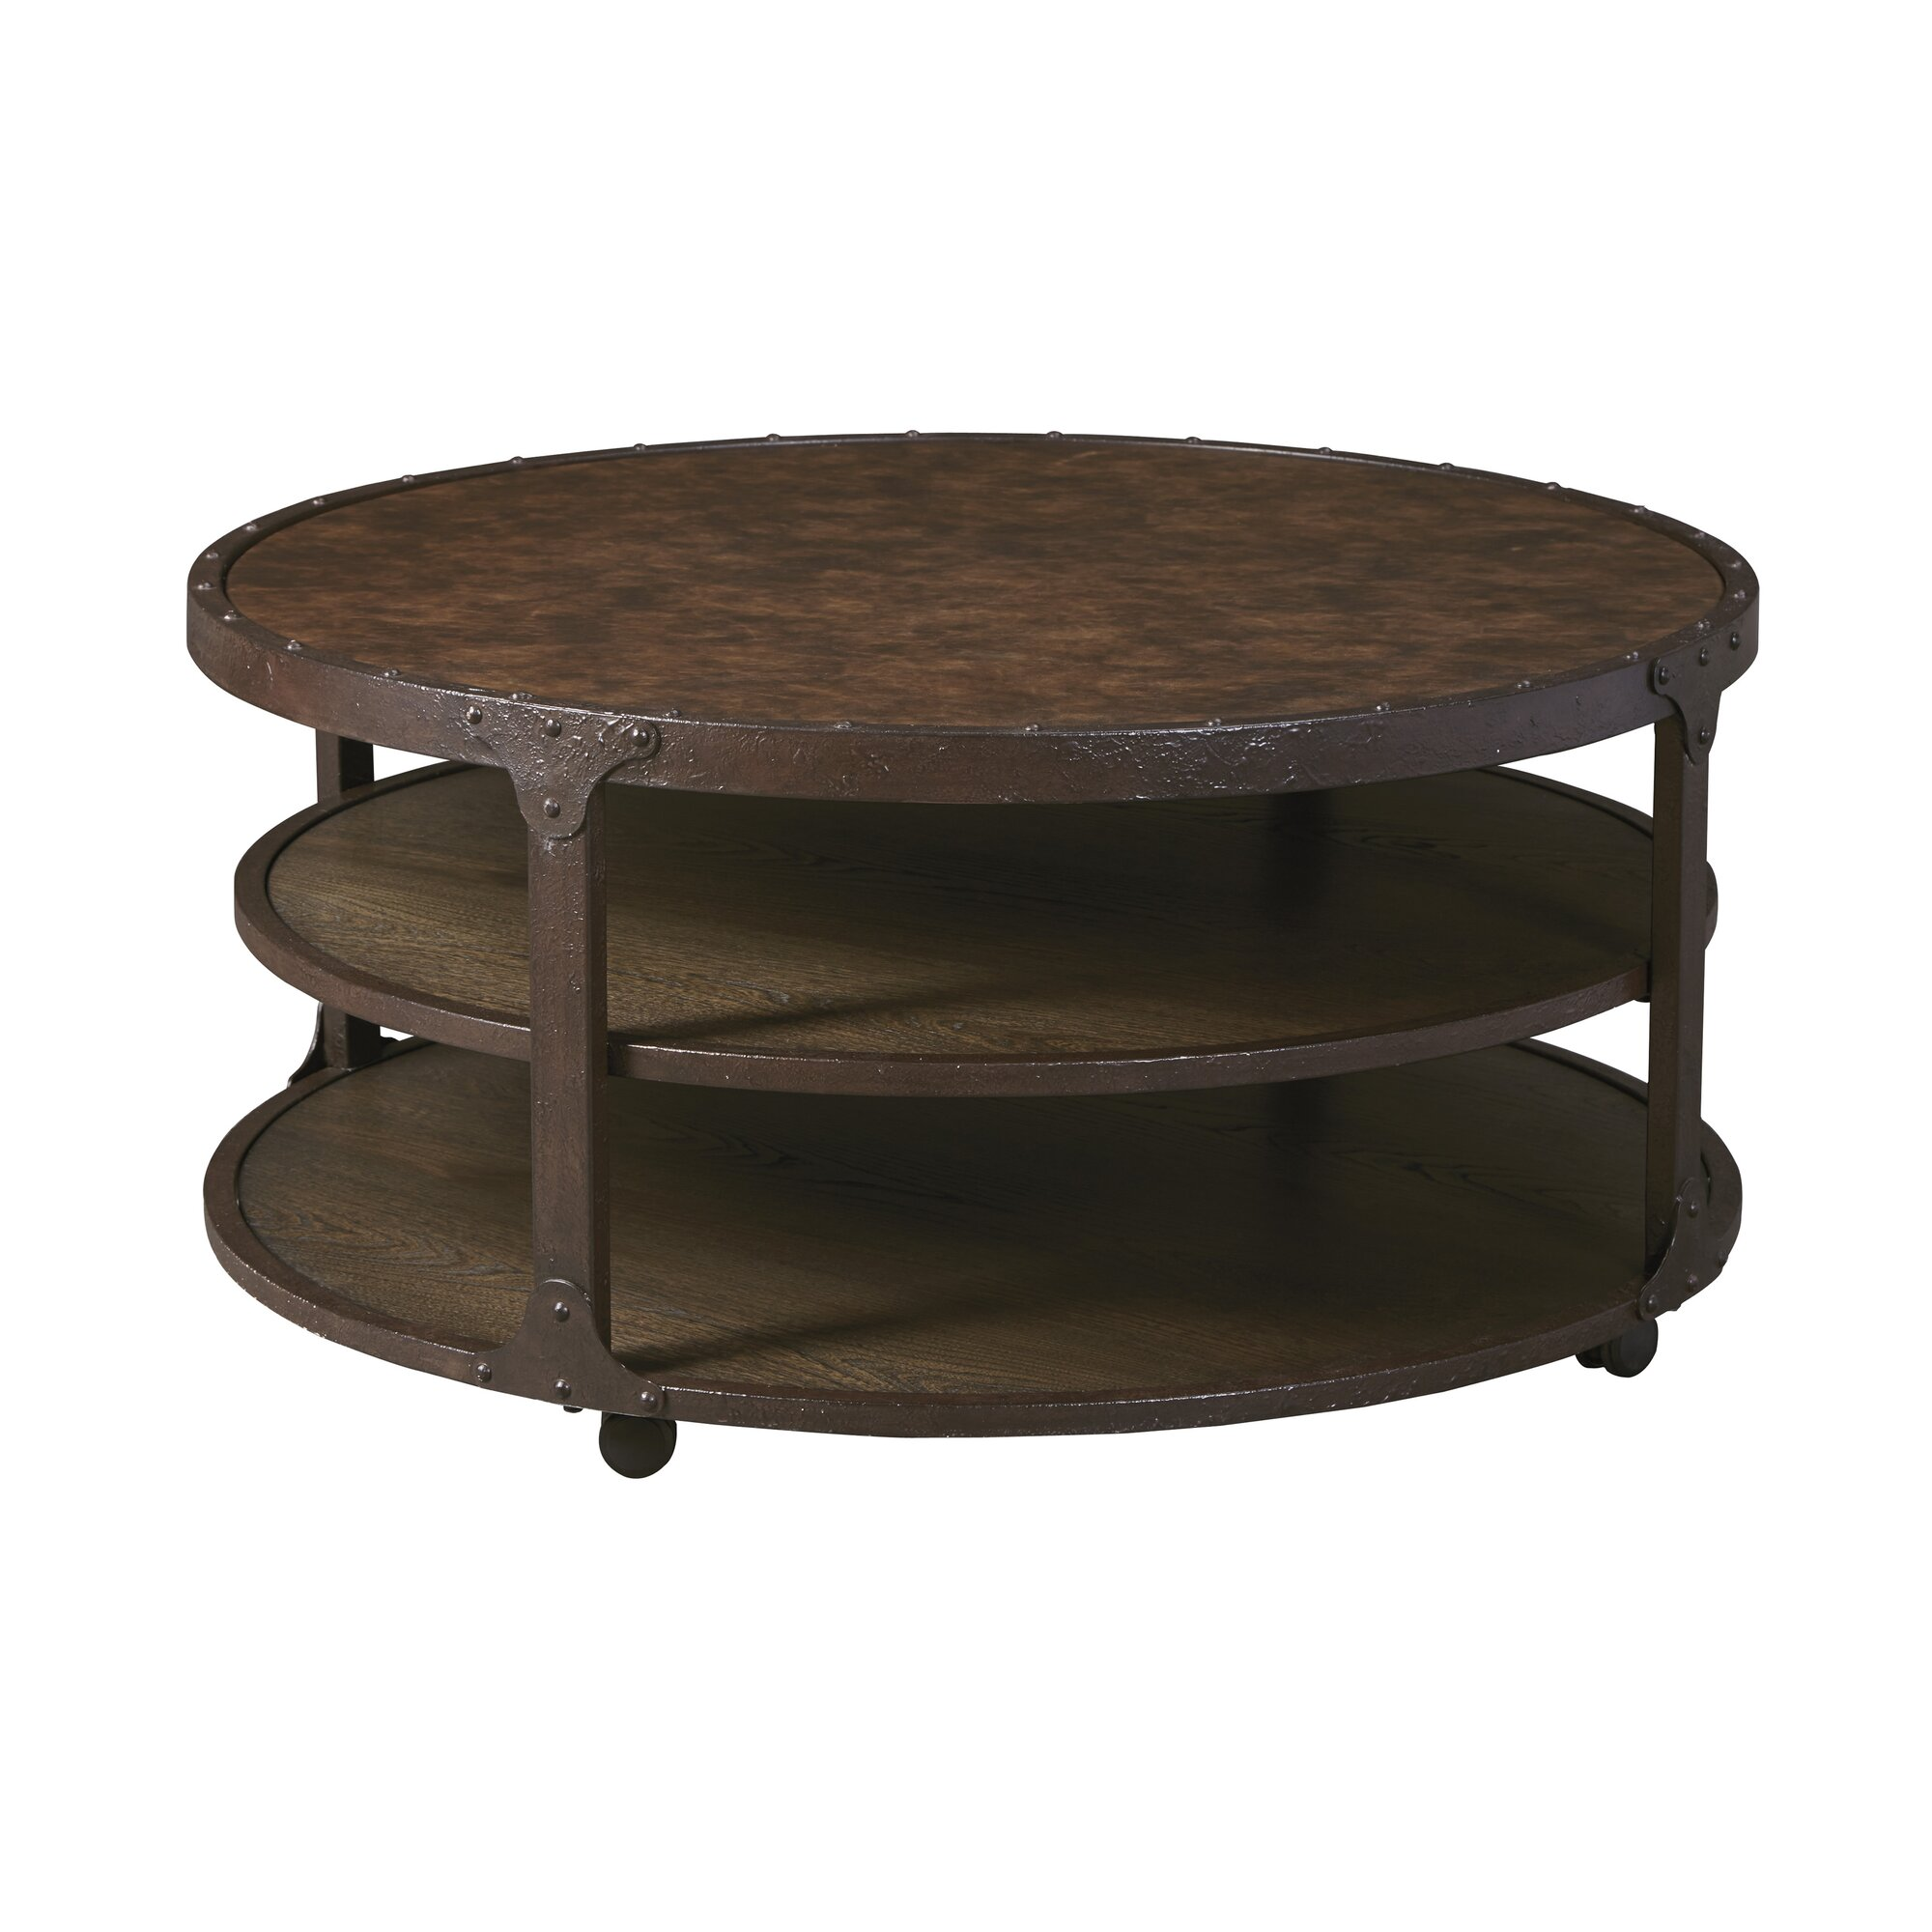 Round Dining Tables Next Day Delivery Images